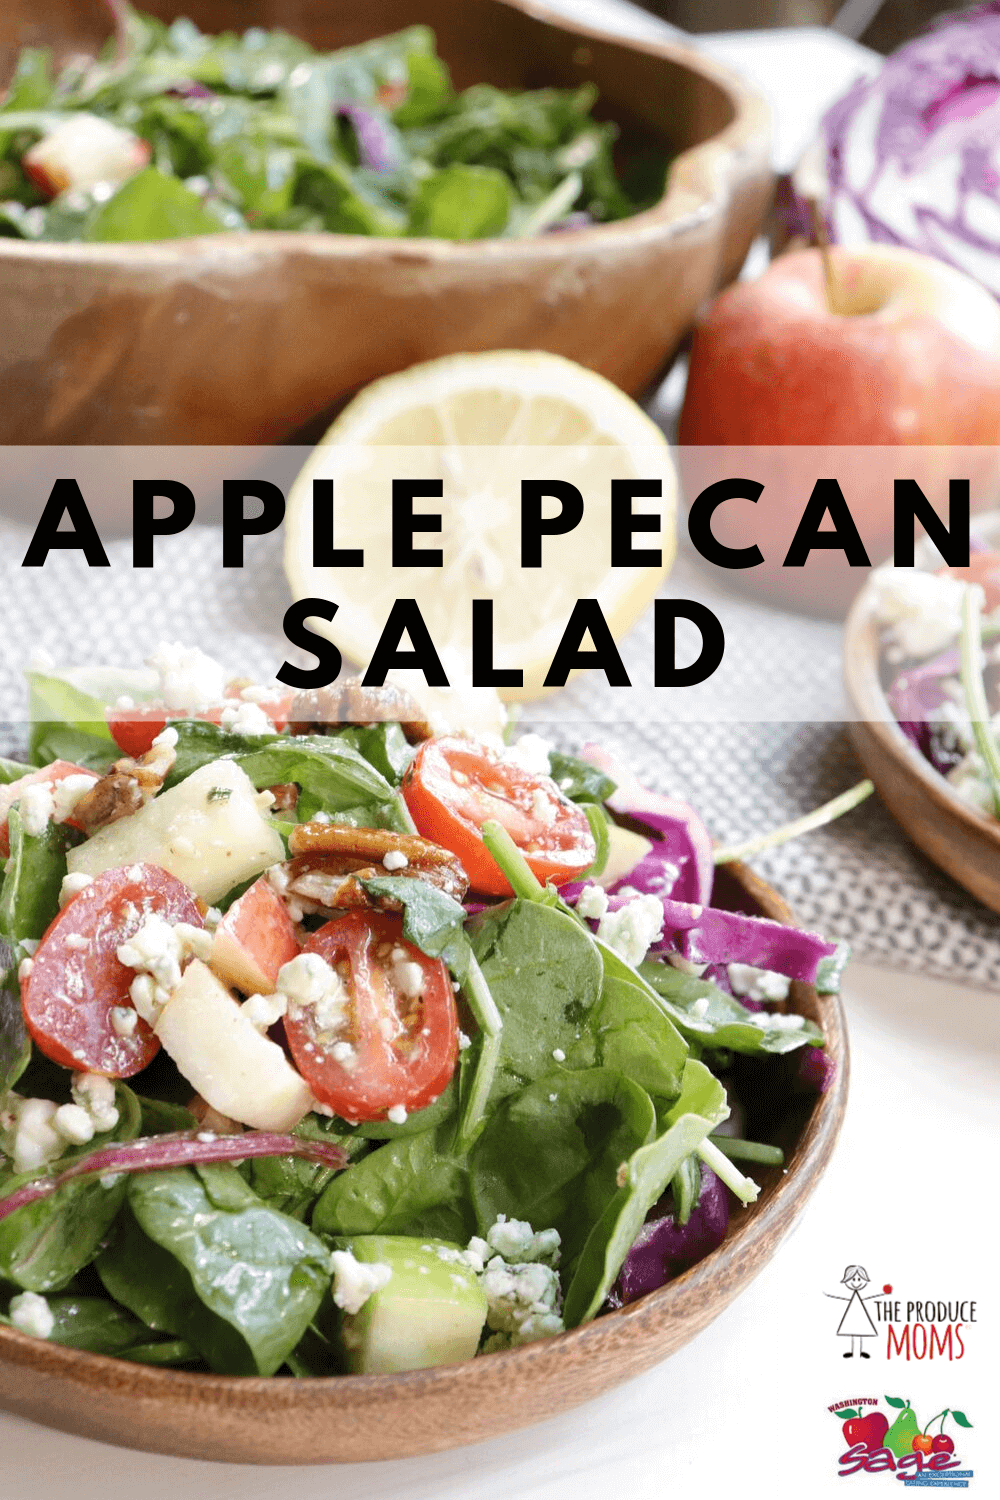 Apple Pecan Salad - Sage Fruit